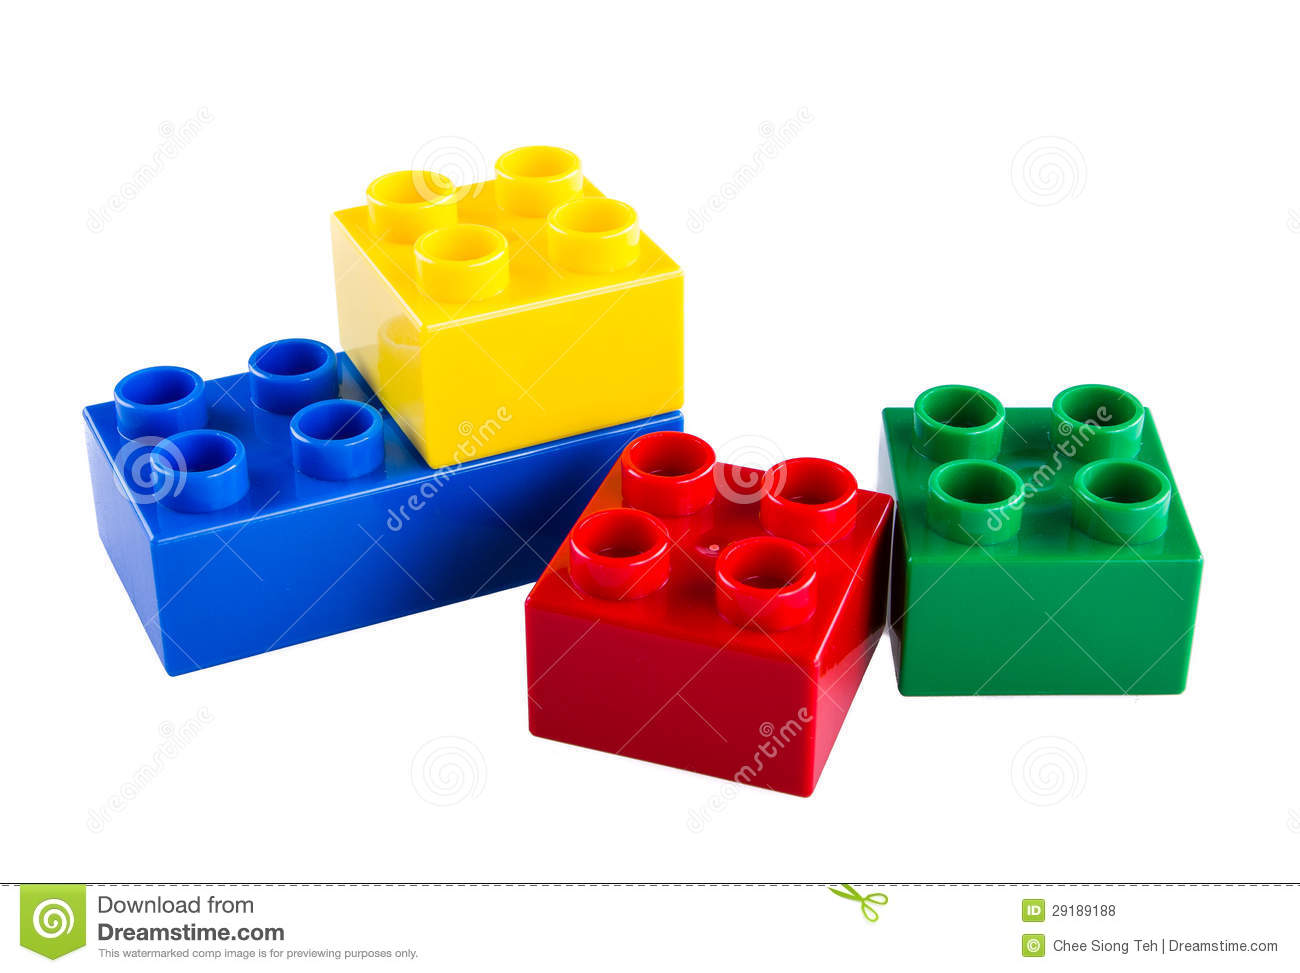 Lego building blocks clipart graphic library stock Lego Blocks Clipart - Clipart Kid graphic library stock